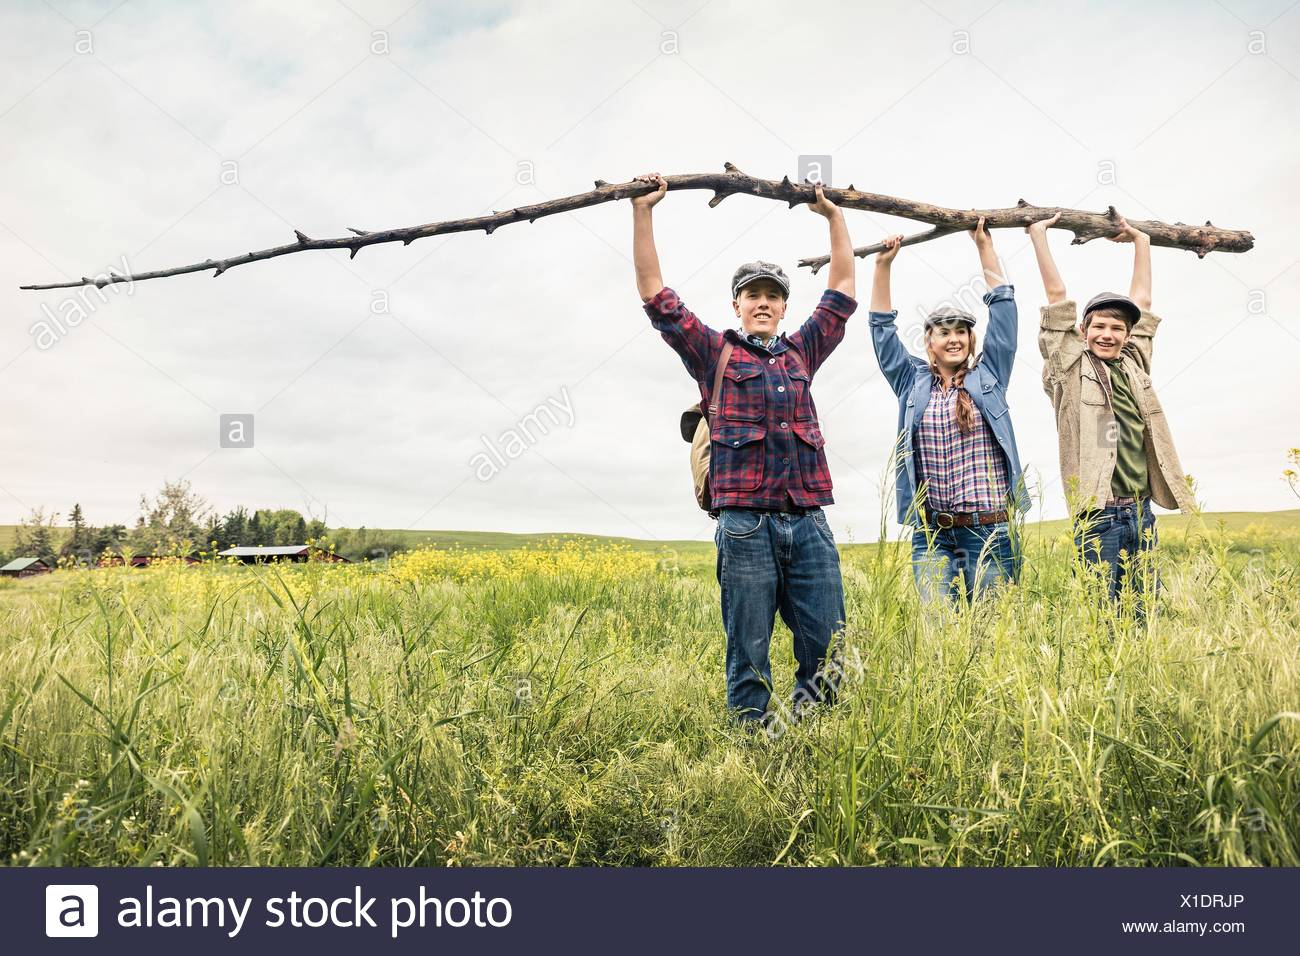 Young adults and teen boy in tall grass holding up branch looking at camera smiling - Stock Image